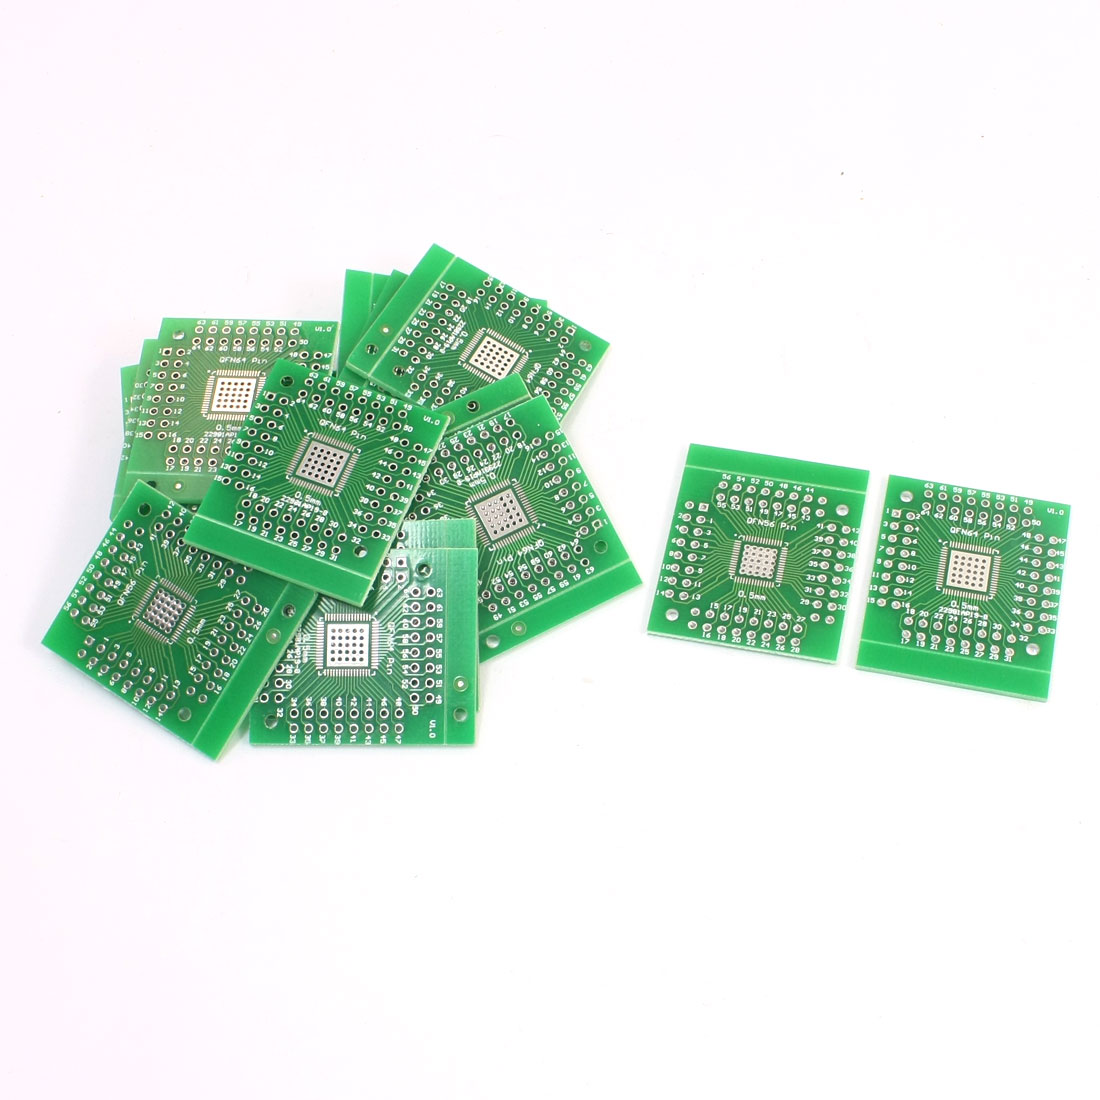 SMD QFN64 QFN56 to DIP56 DIP64 Double Sides Adapter PCB Converter Plate 20Pcs